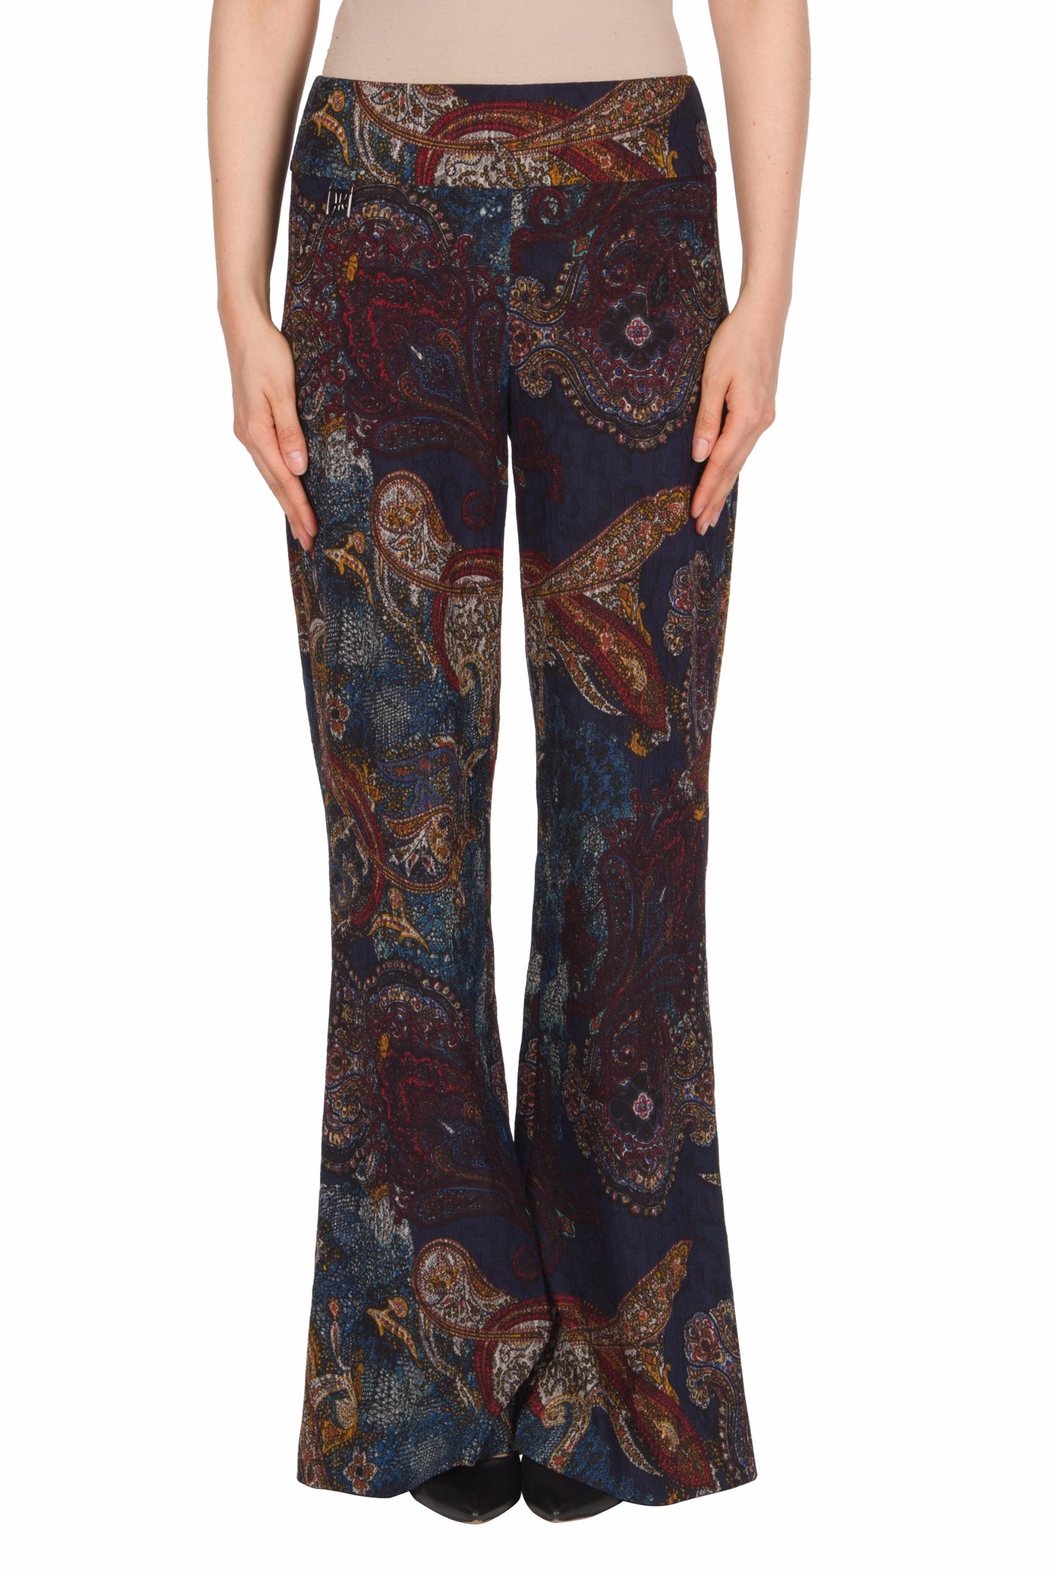 Joseph Ribkoff Paisley Taper Pant - Front Cropped Image